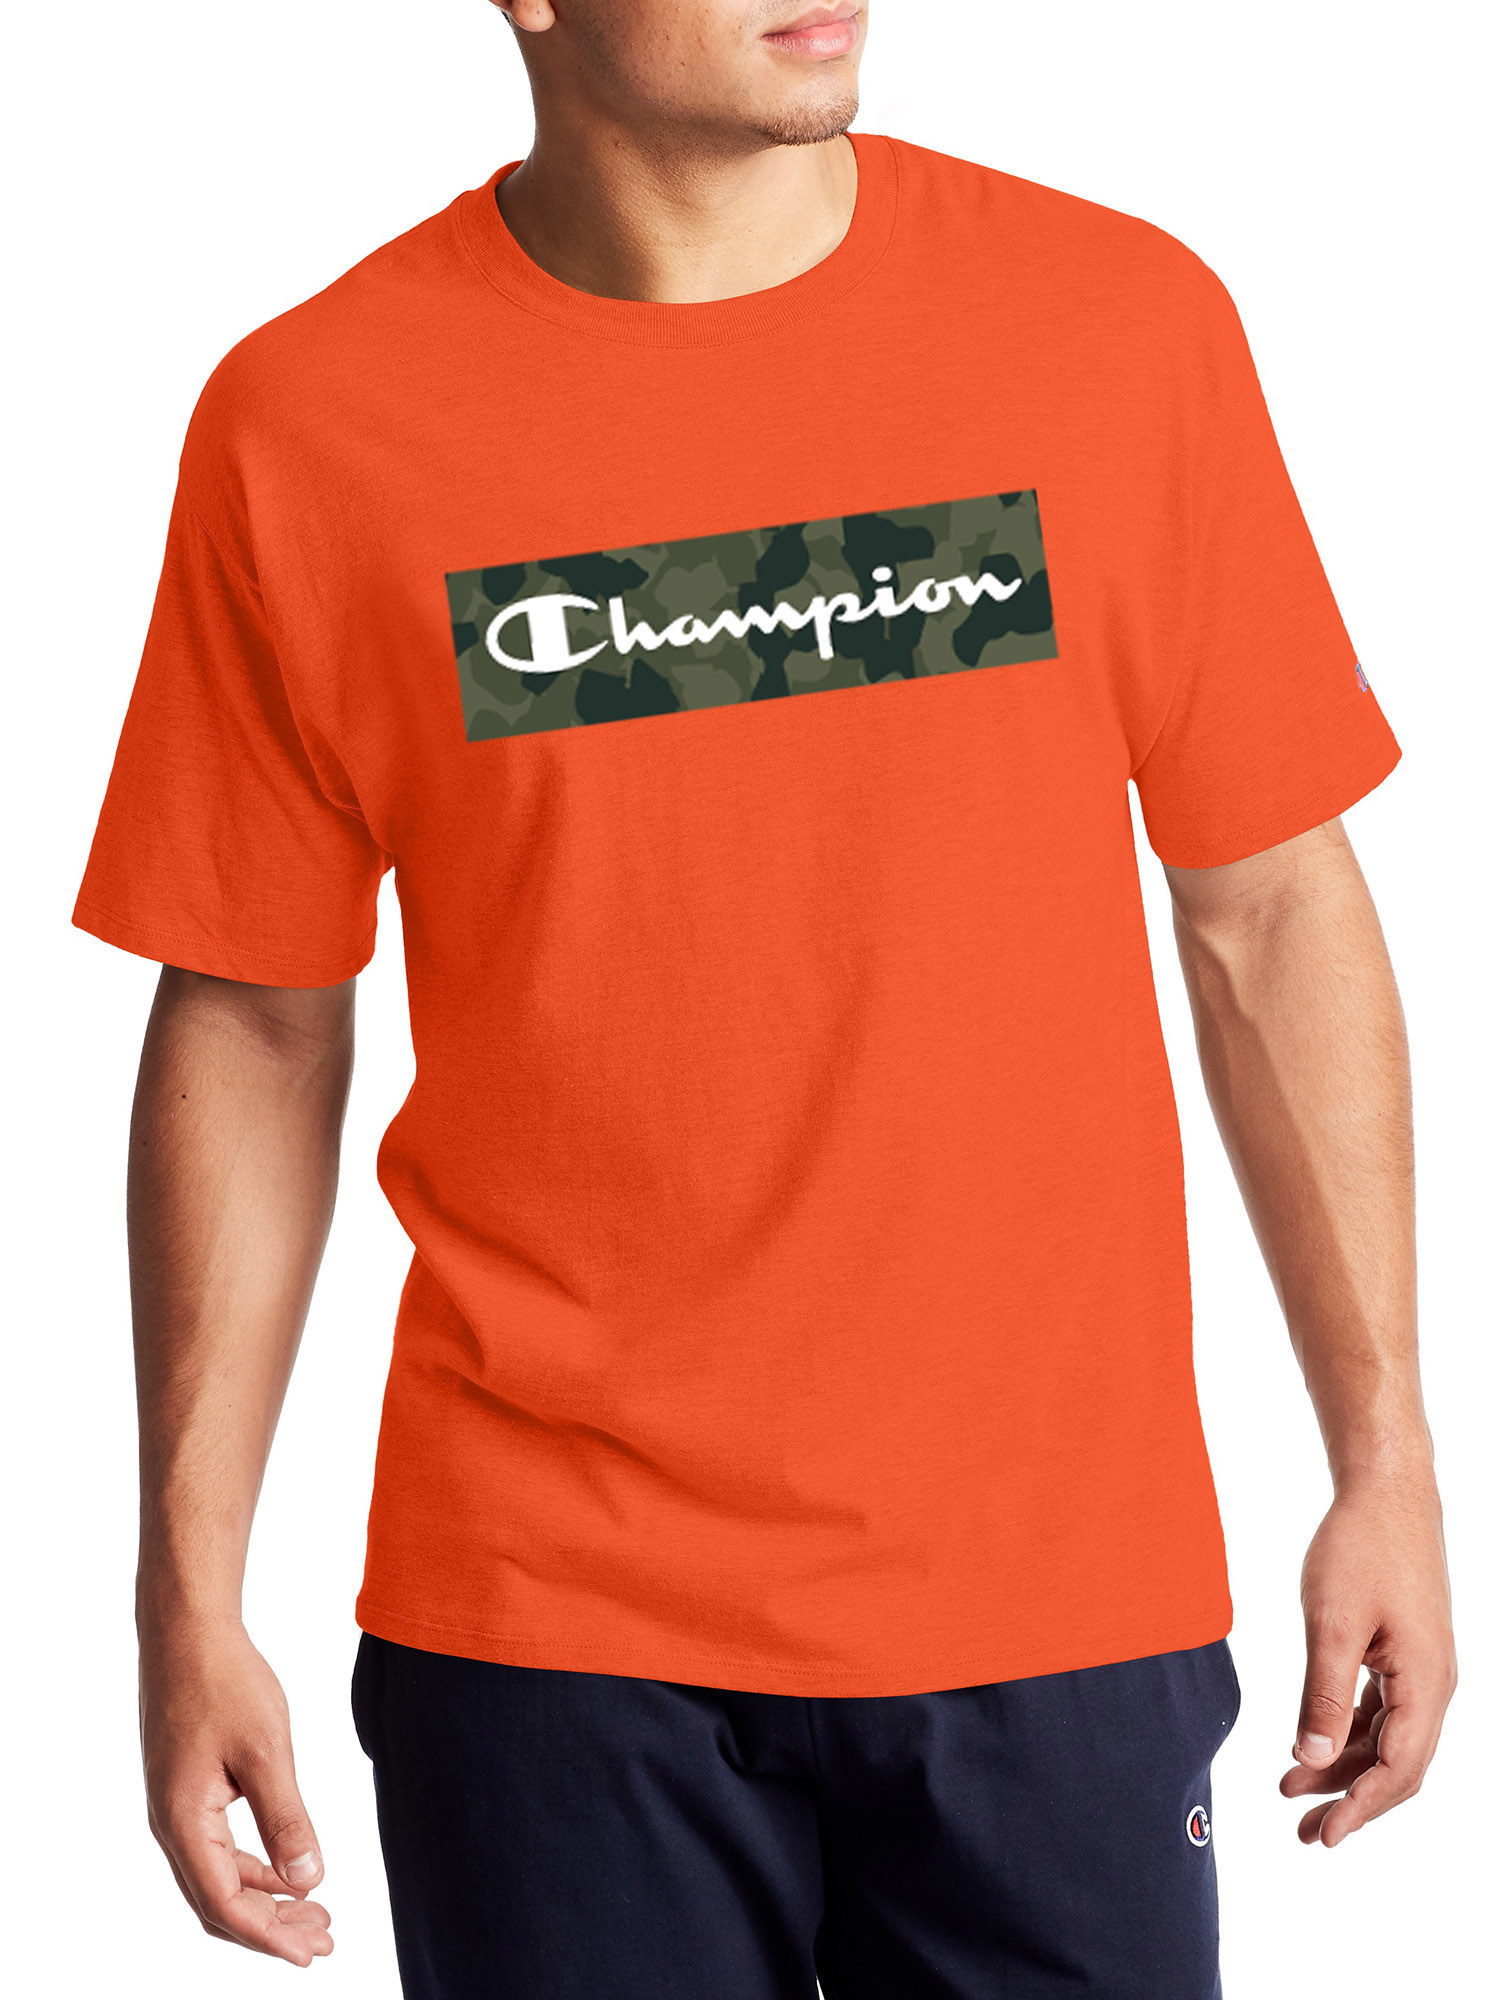 orange champion t shirt with a camo graphic design